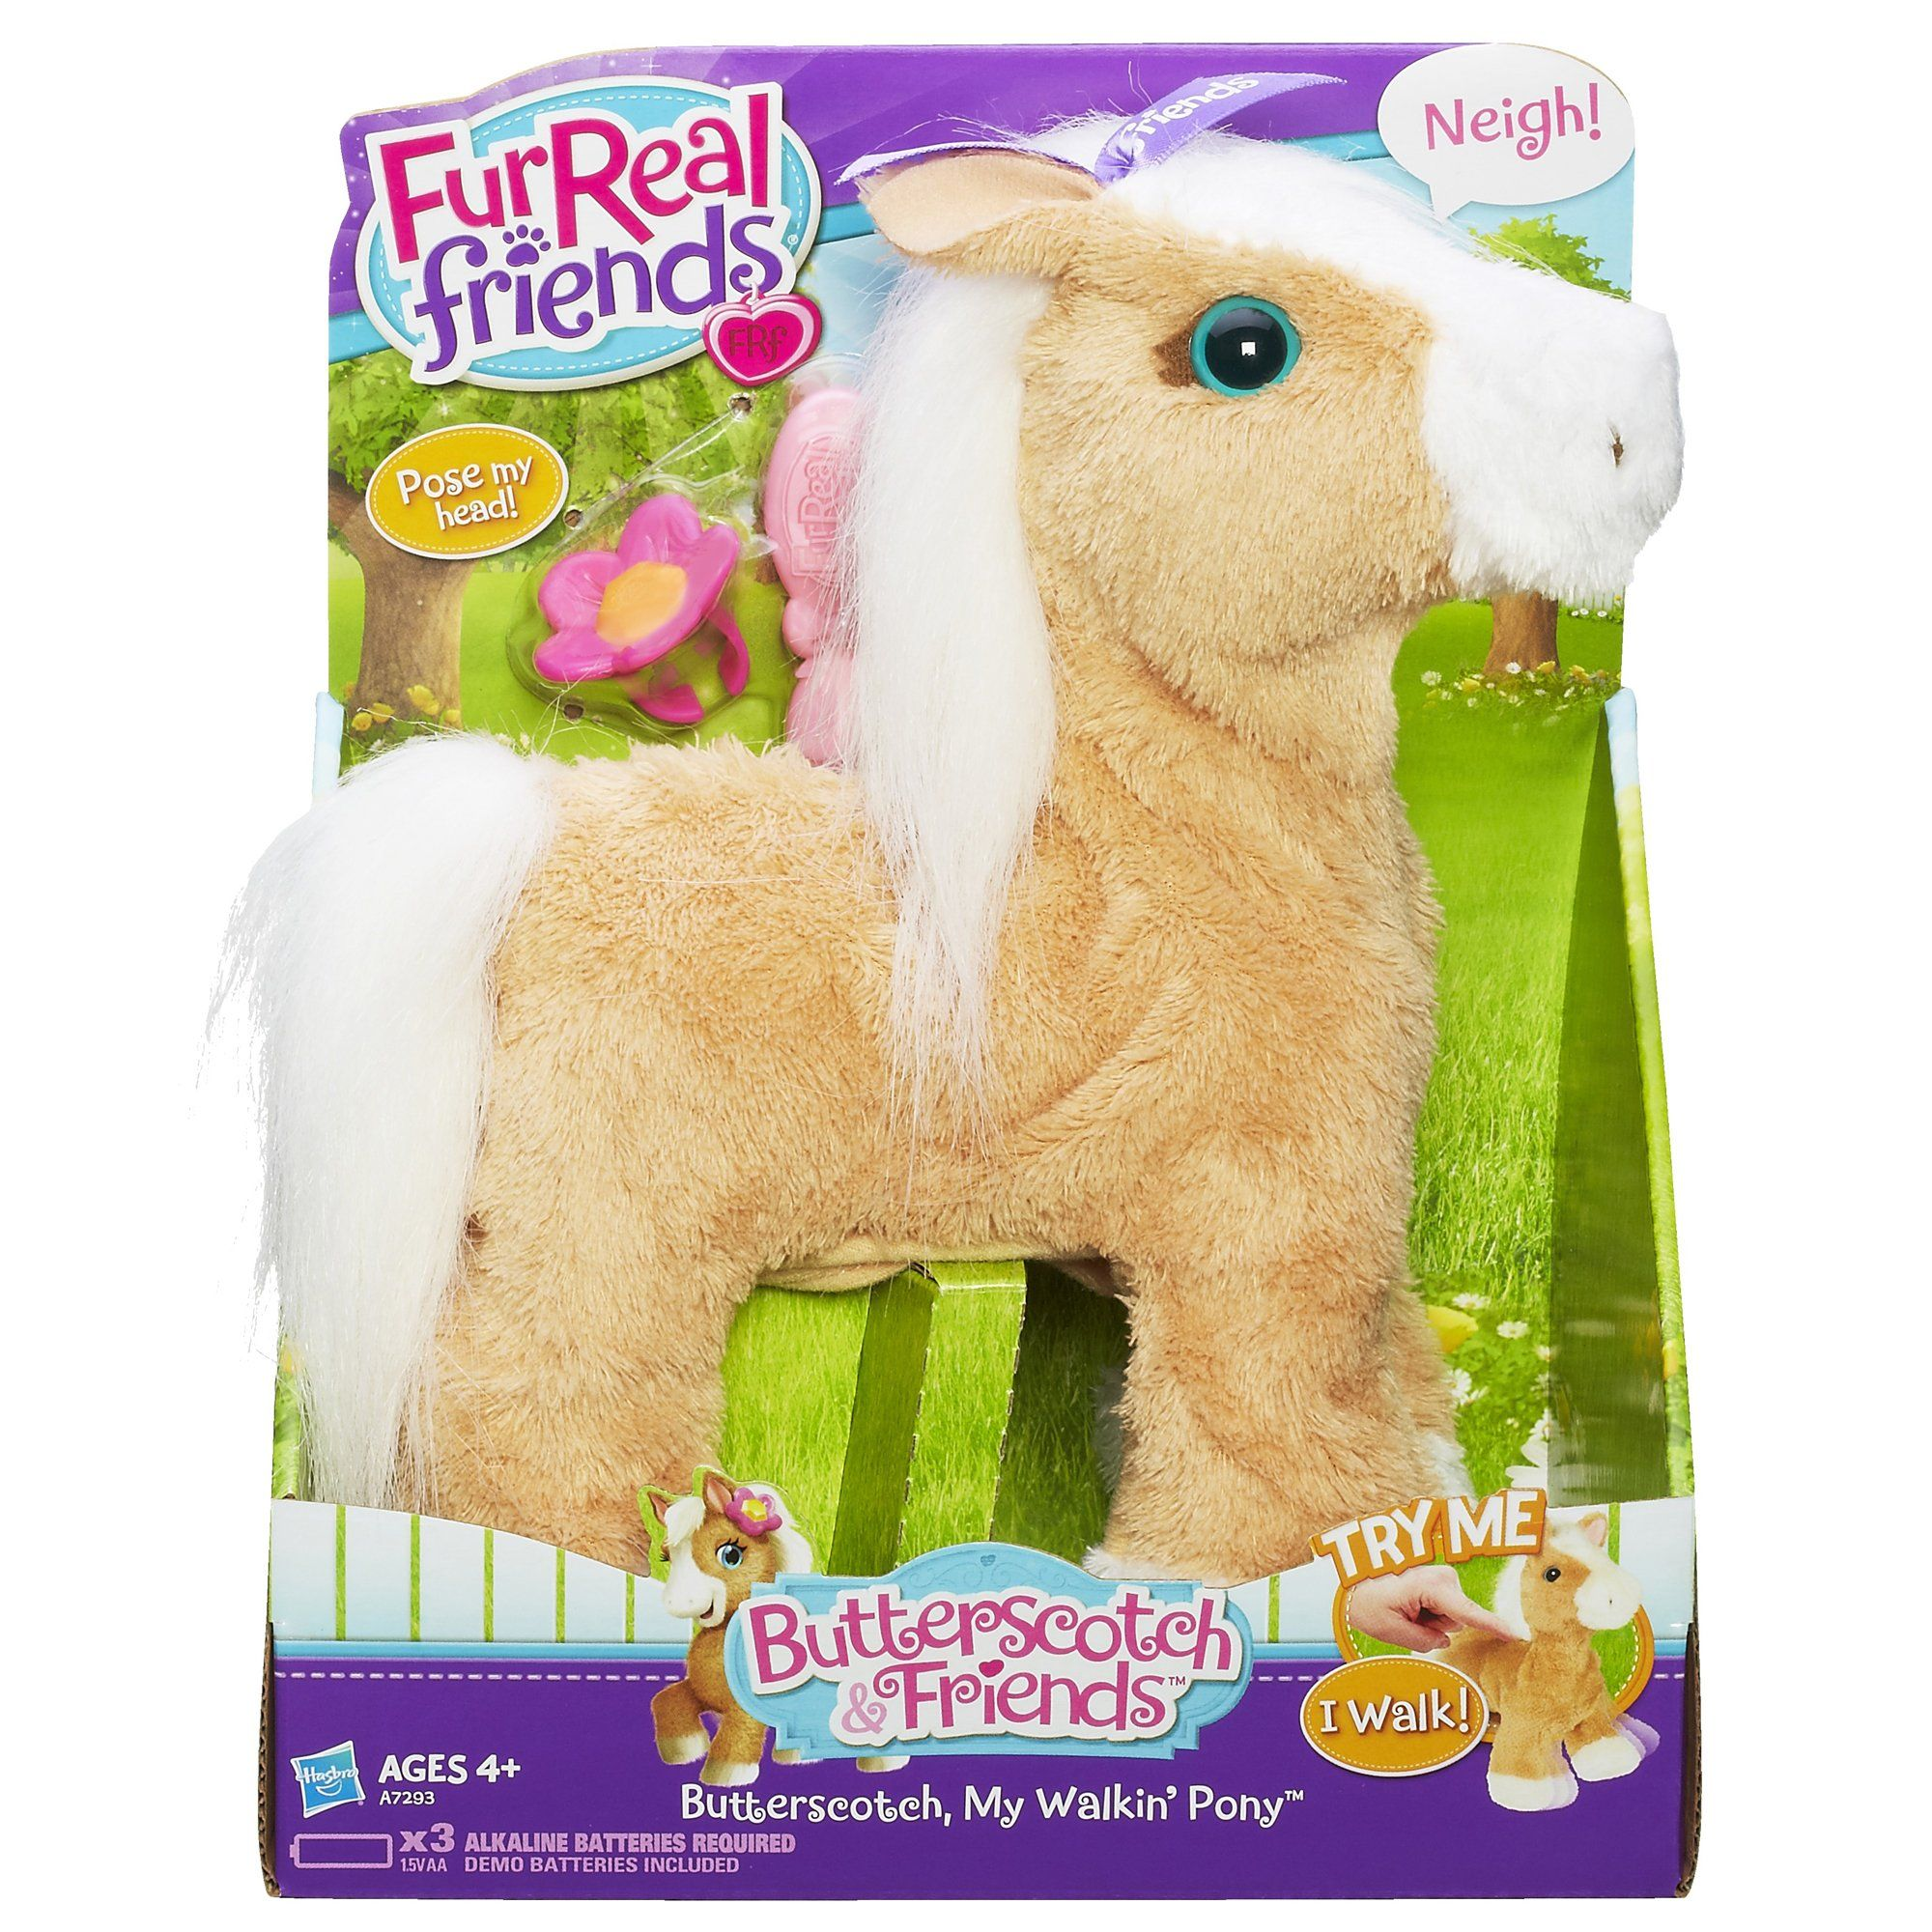 Amazon Com Furreal Friends Butterscotch My Walkin Pony Pet Toys Games Fur Real Friends Baby Girl Toys Hugs And Cuddles